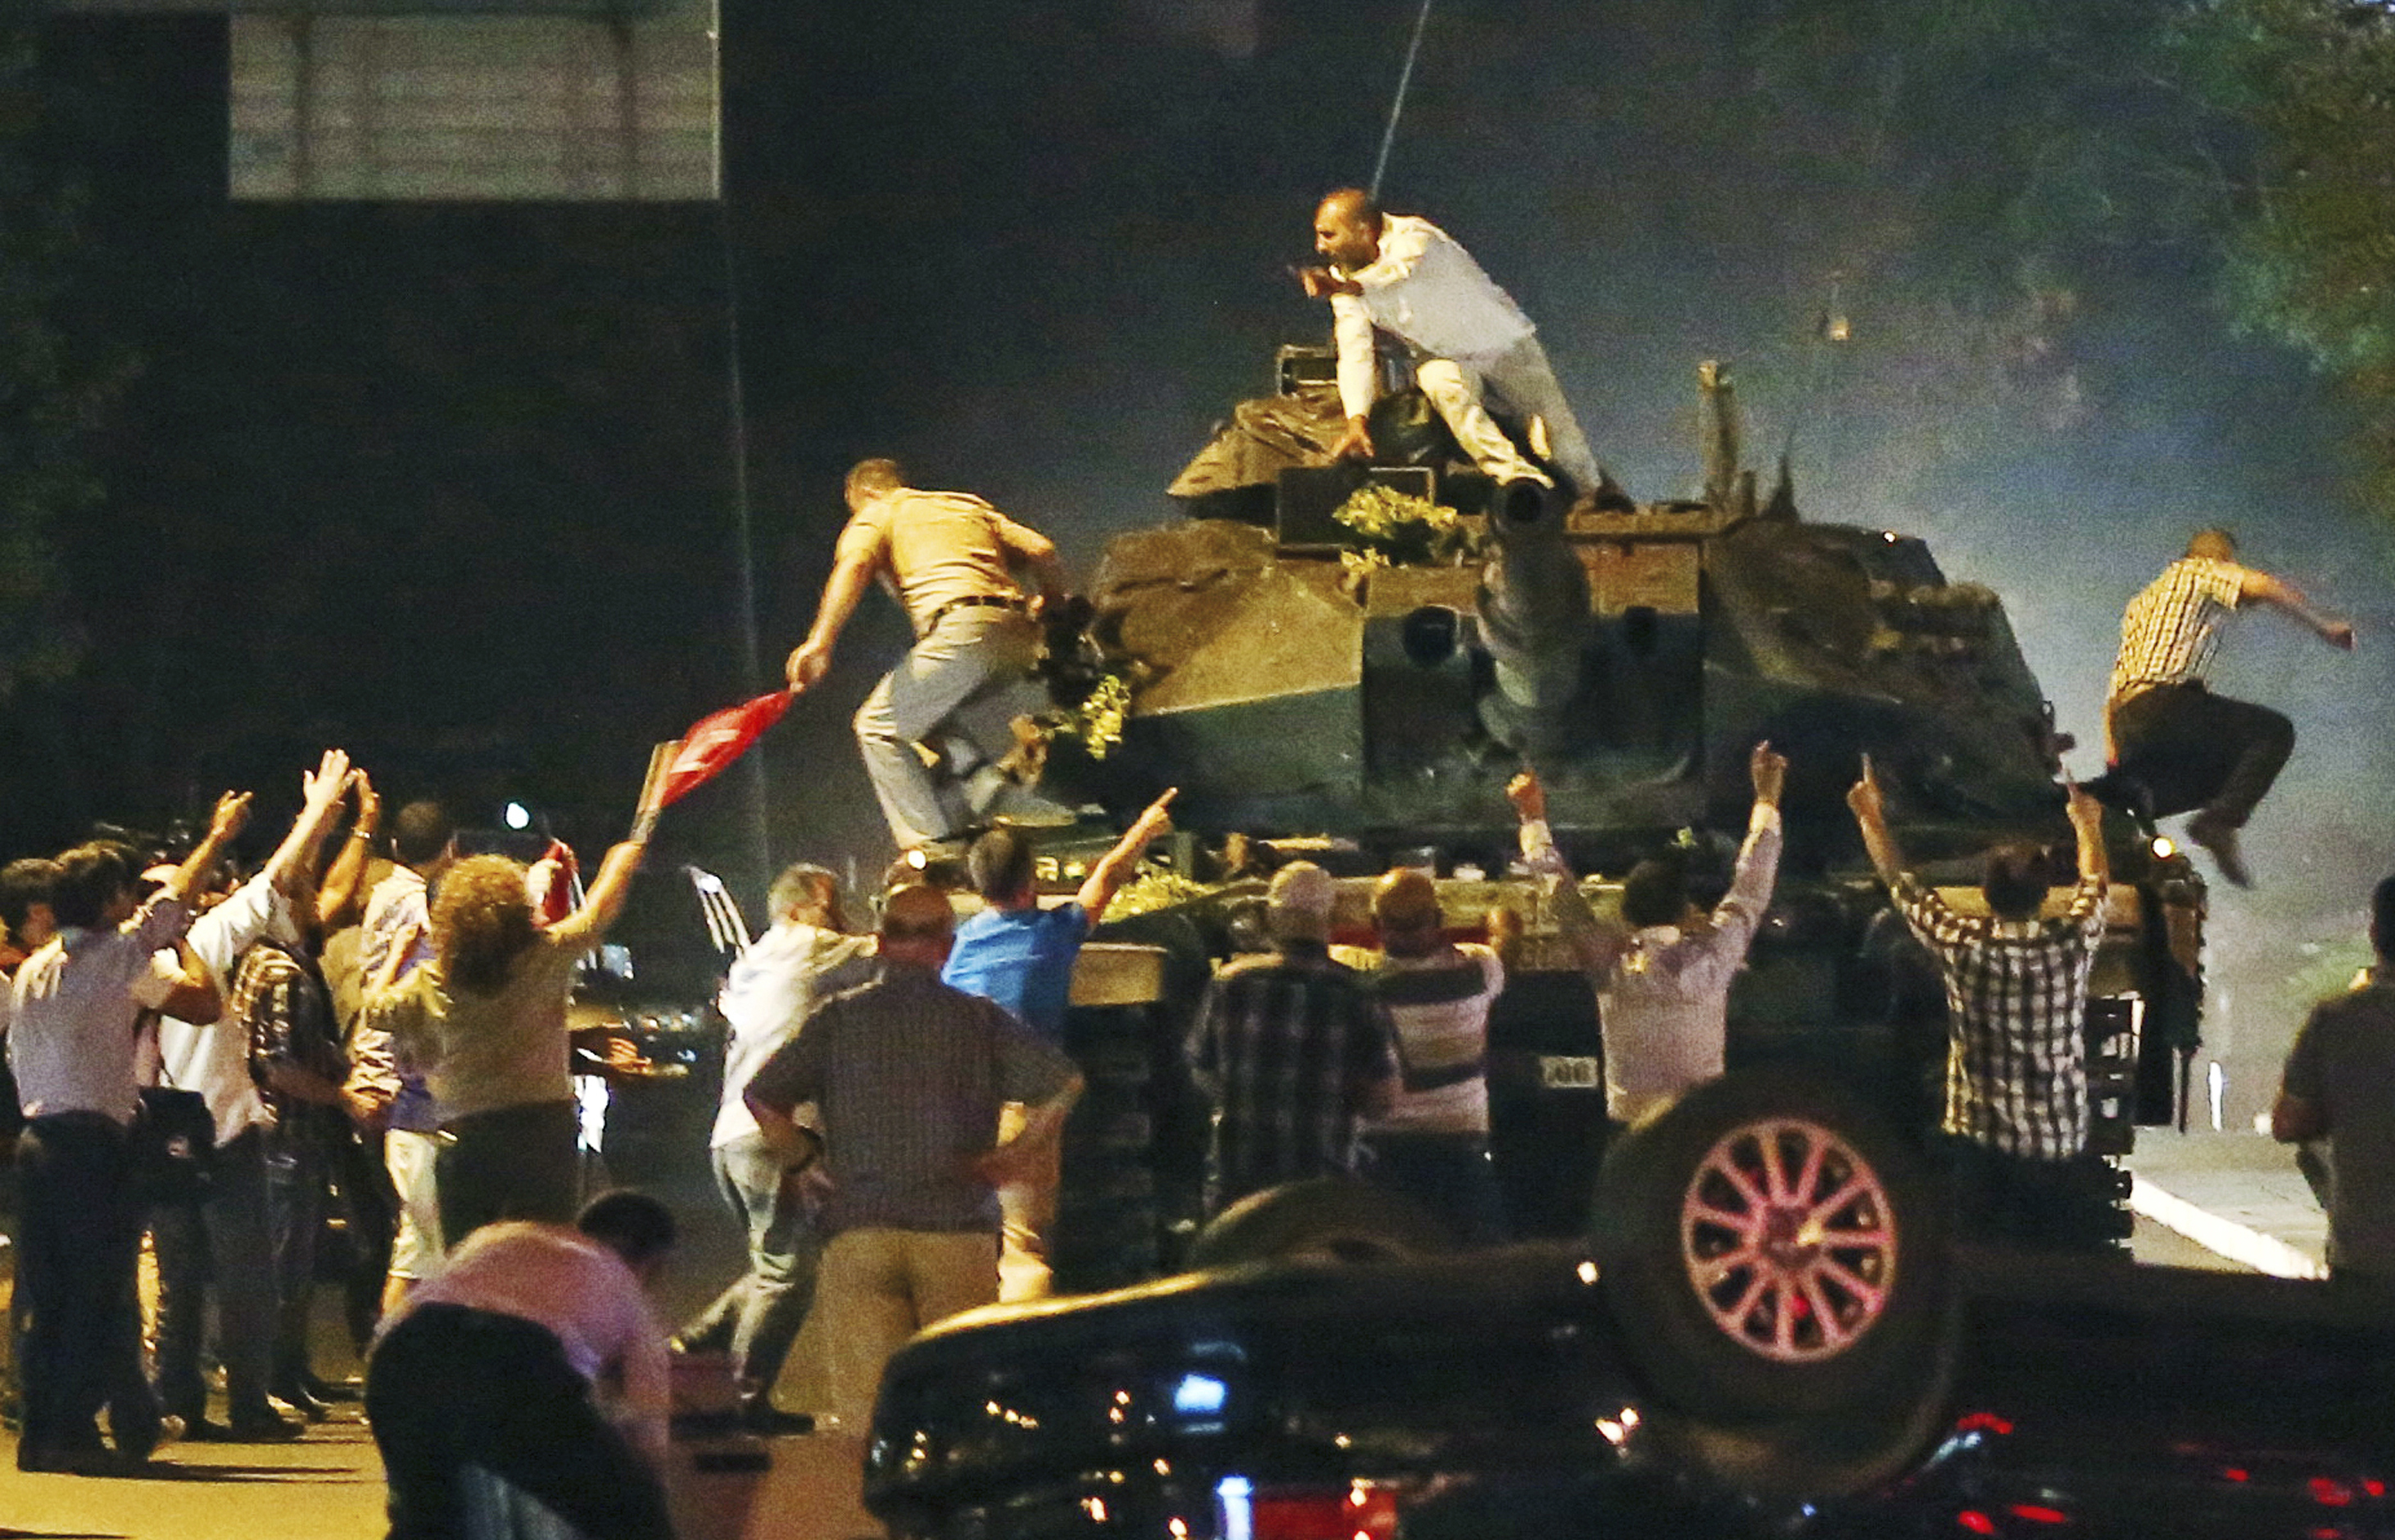 Turkey's religious groups denounce coup attempt - The Boston